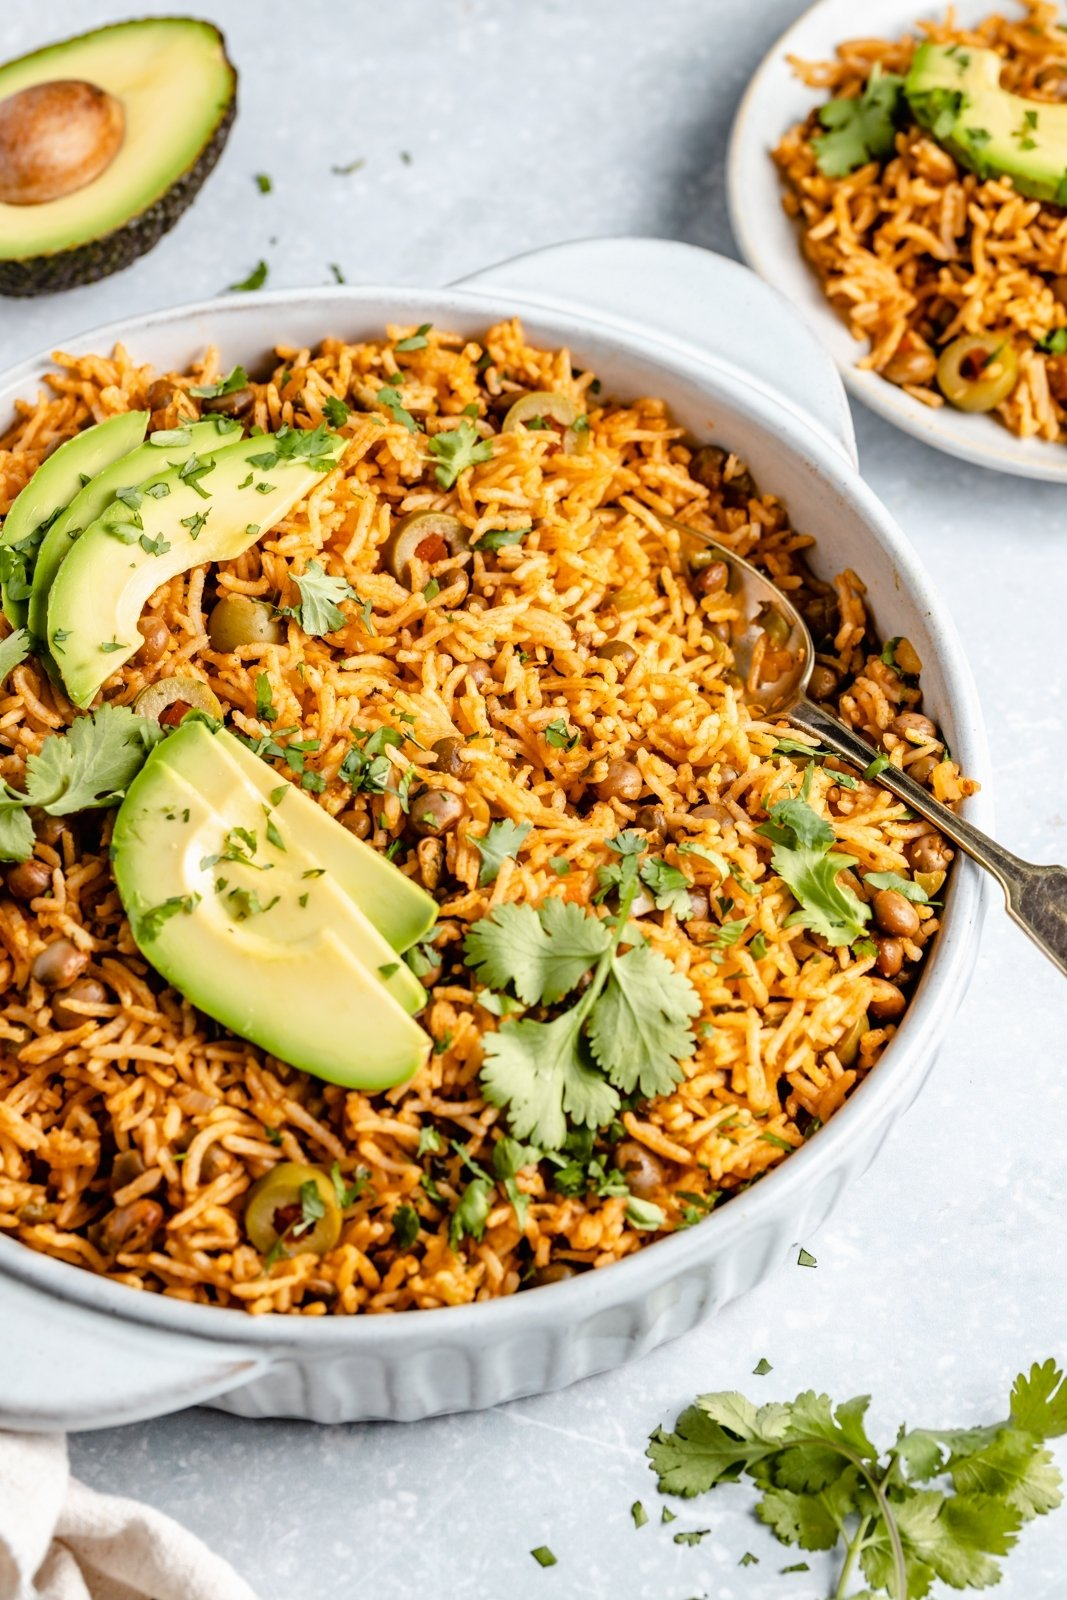 arroz con gandules in a dish topped with cilantro and avocado